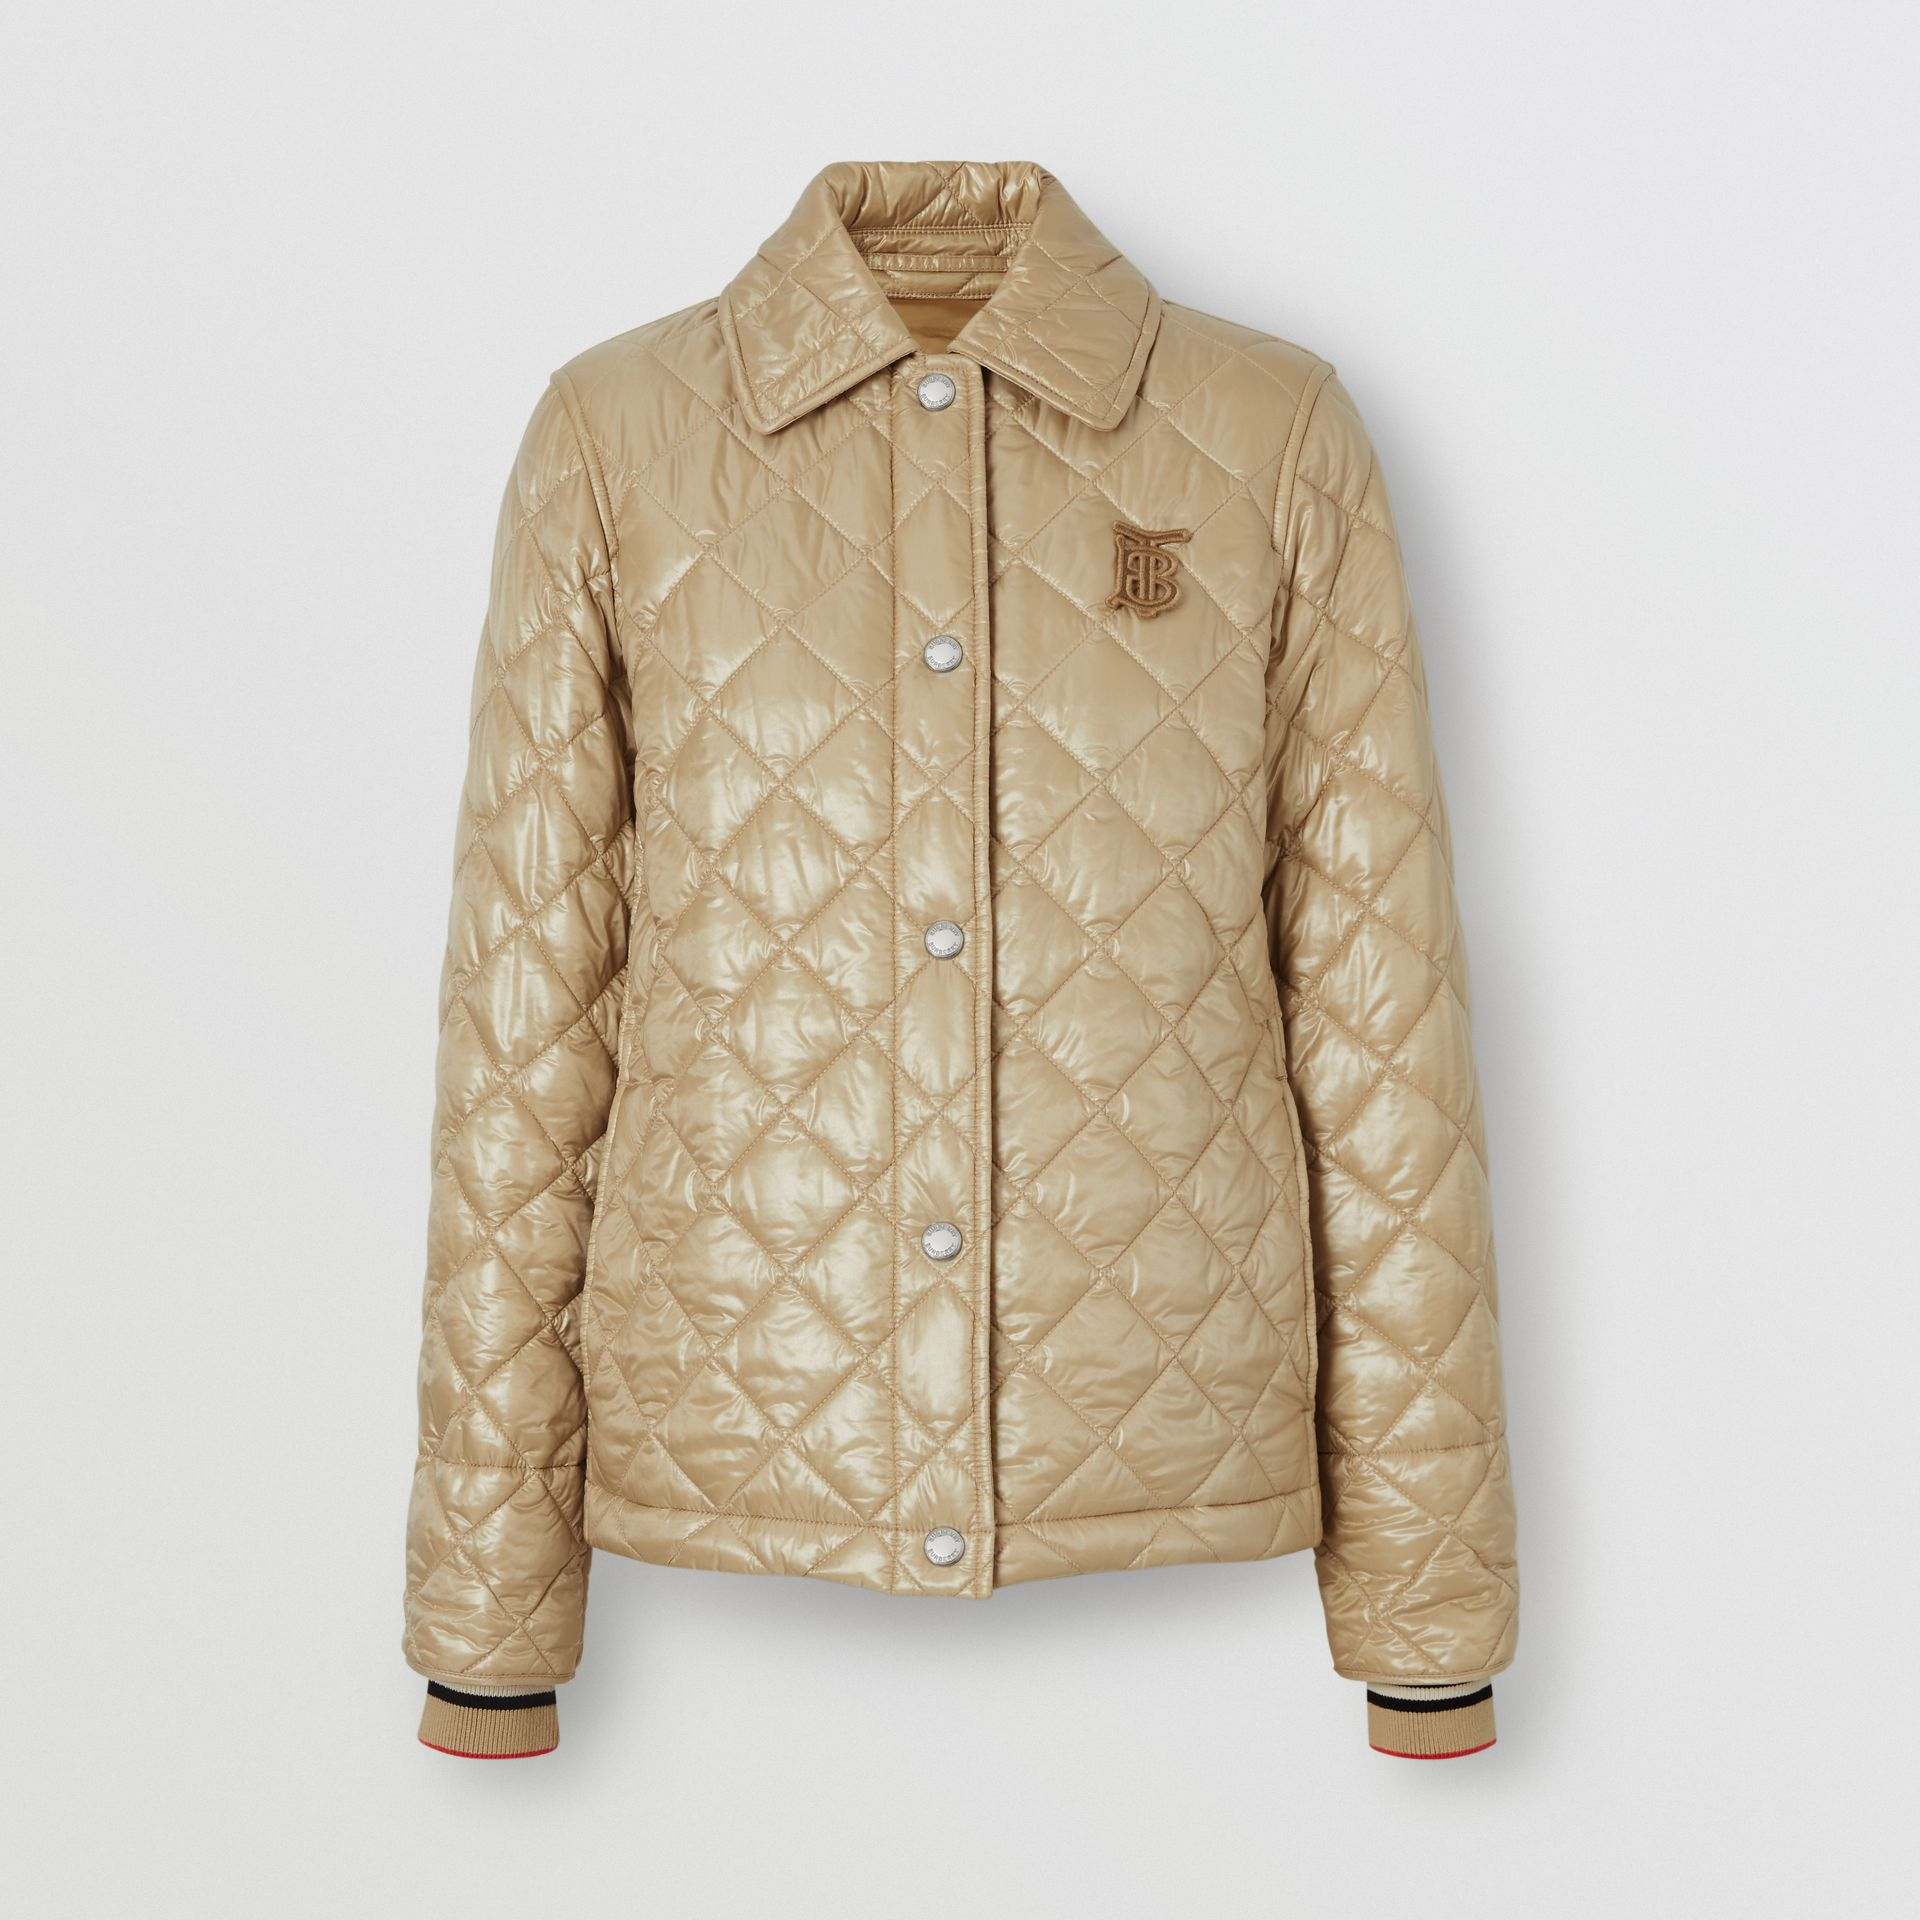 Monogram Motif Diamond Quilted Jacket in Honey - Women | Burberry United States - gallery image 3